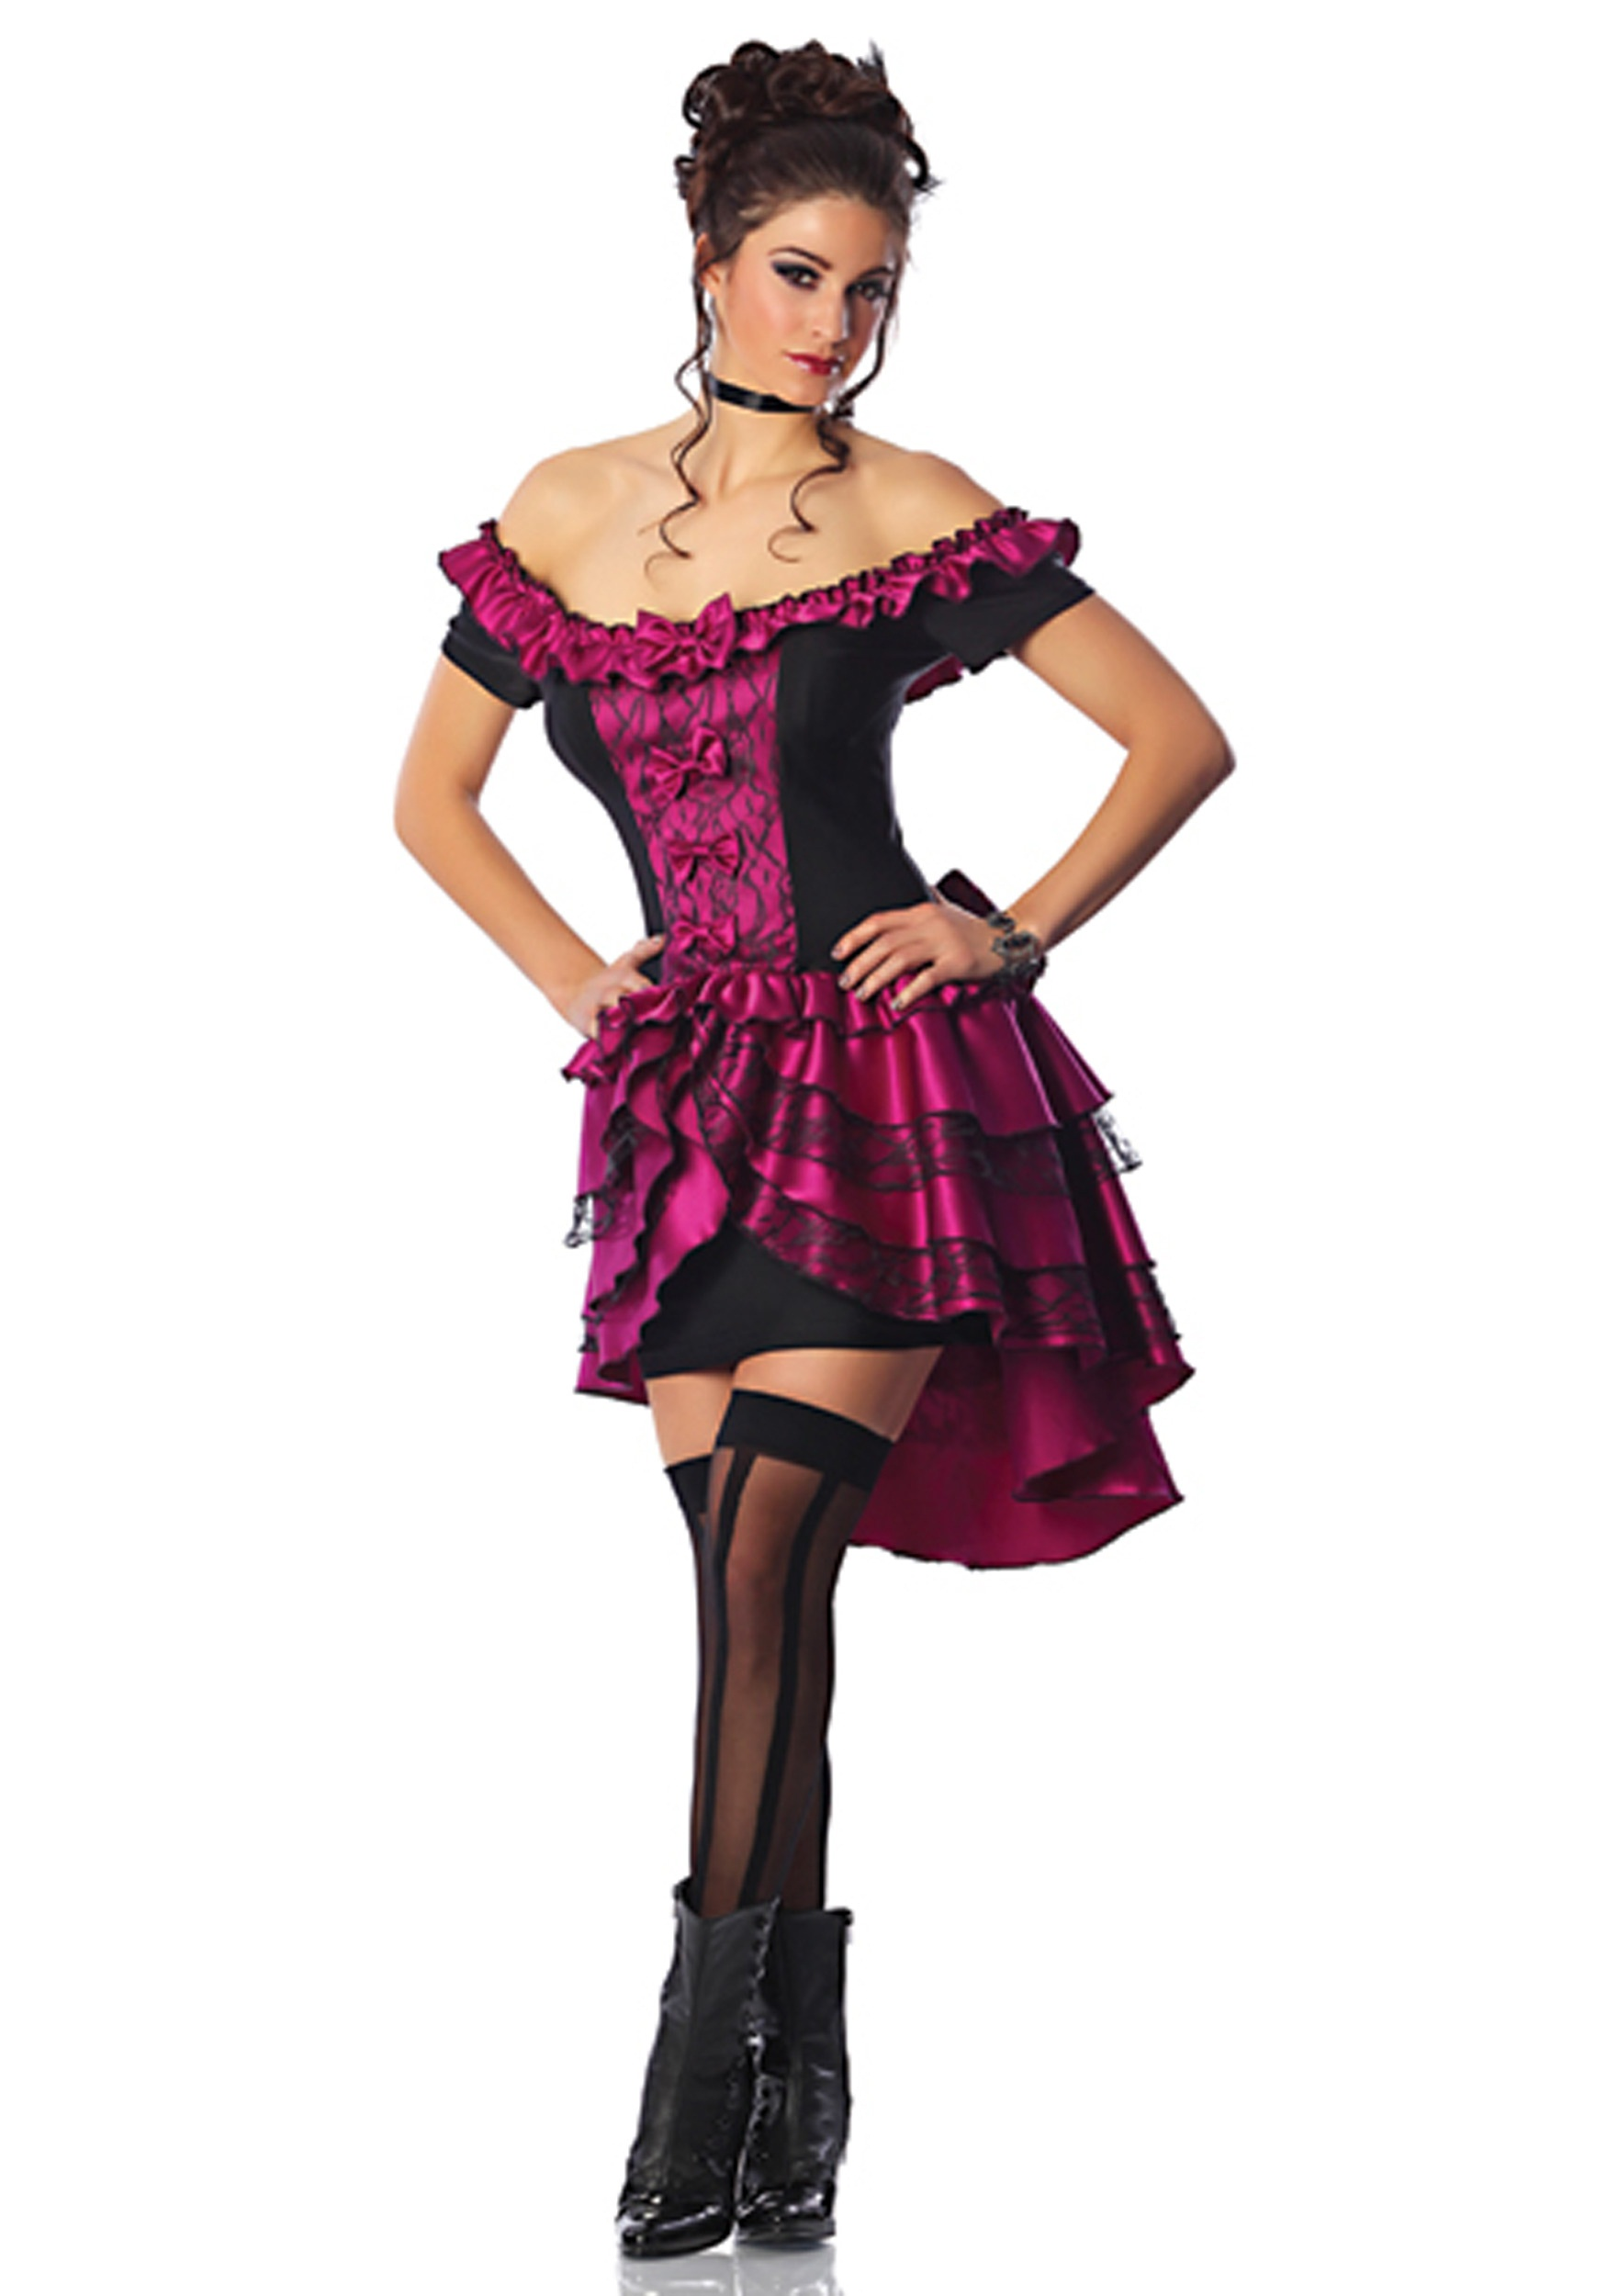 Plus Size Violet Dance Hall Queen Costume Halloween Costumes